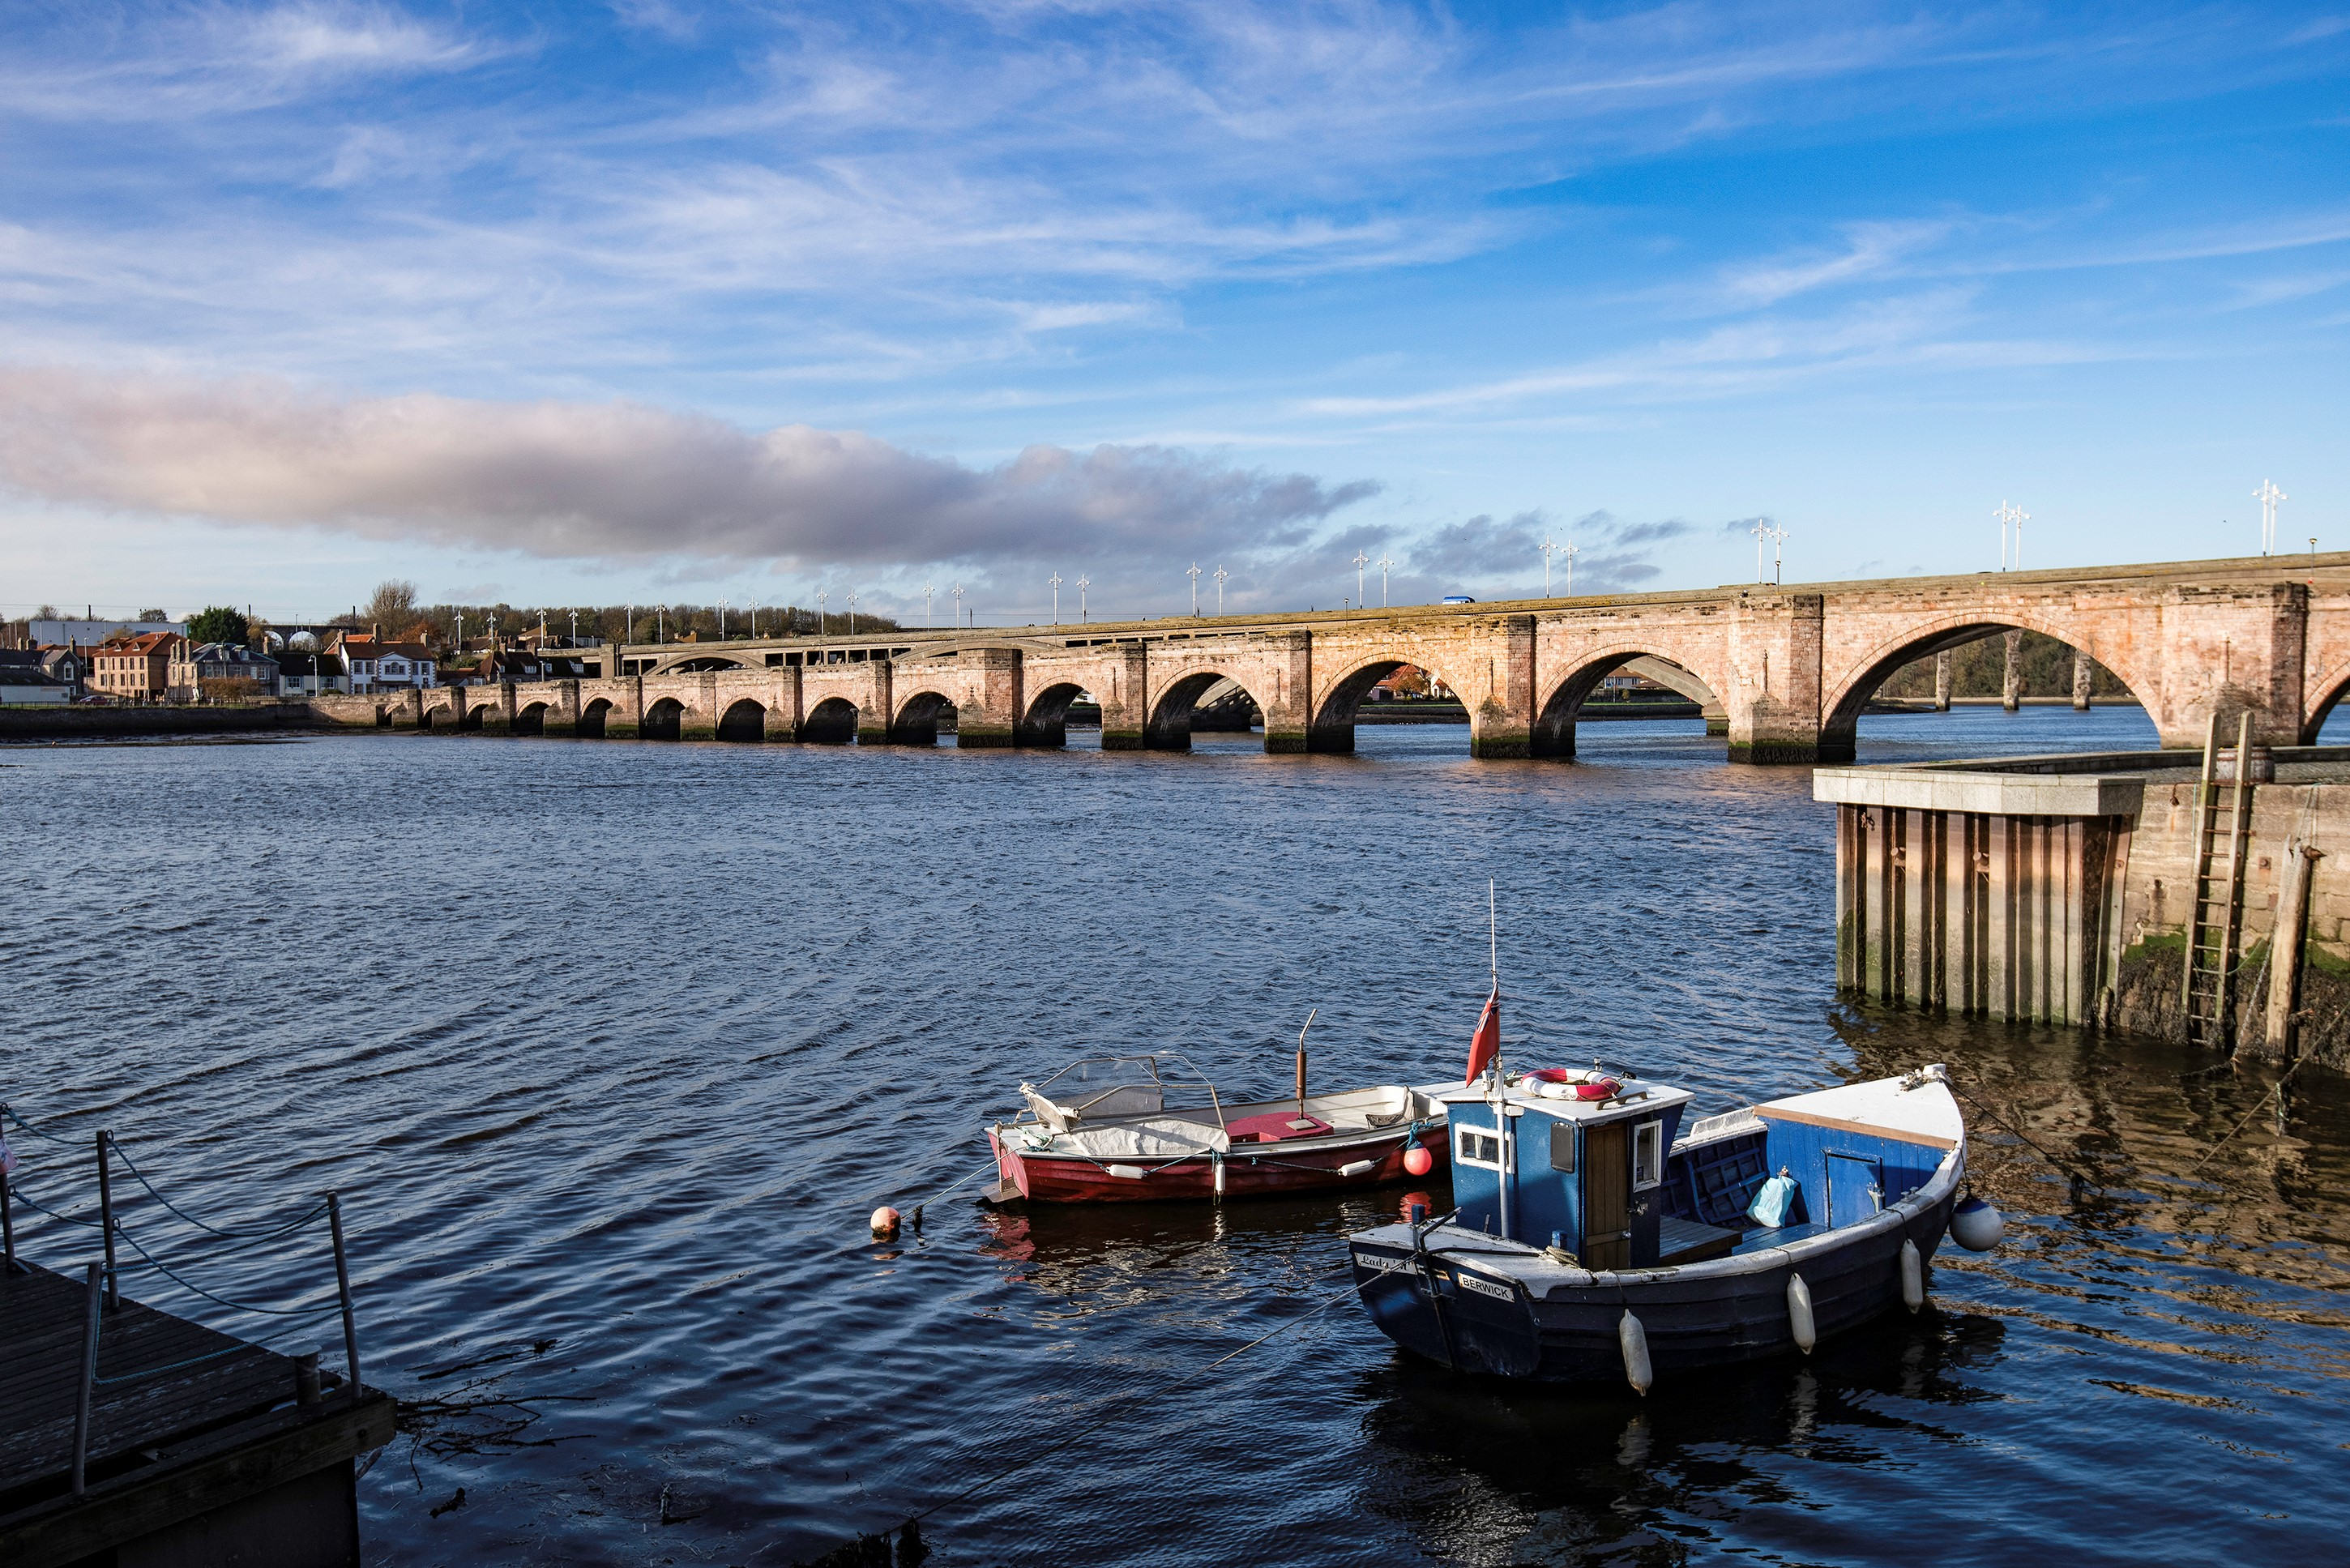 Berwick upon Tweed